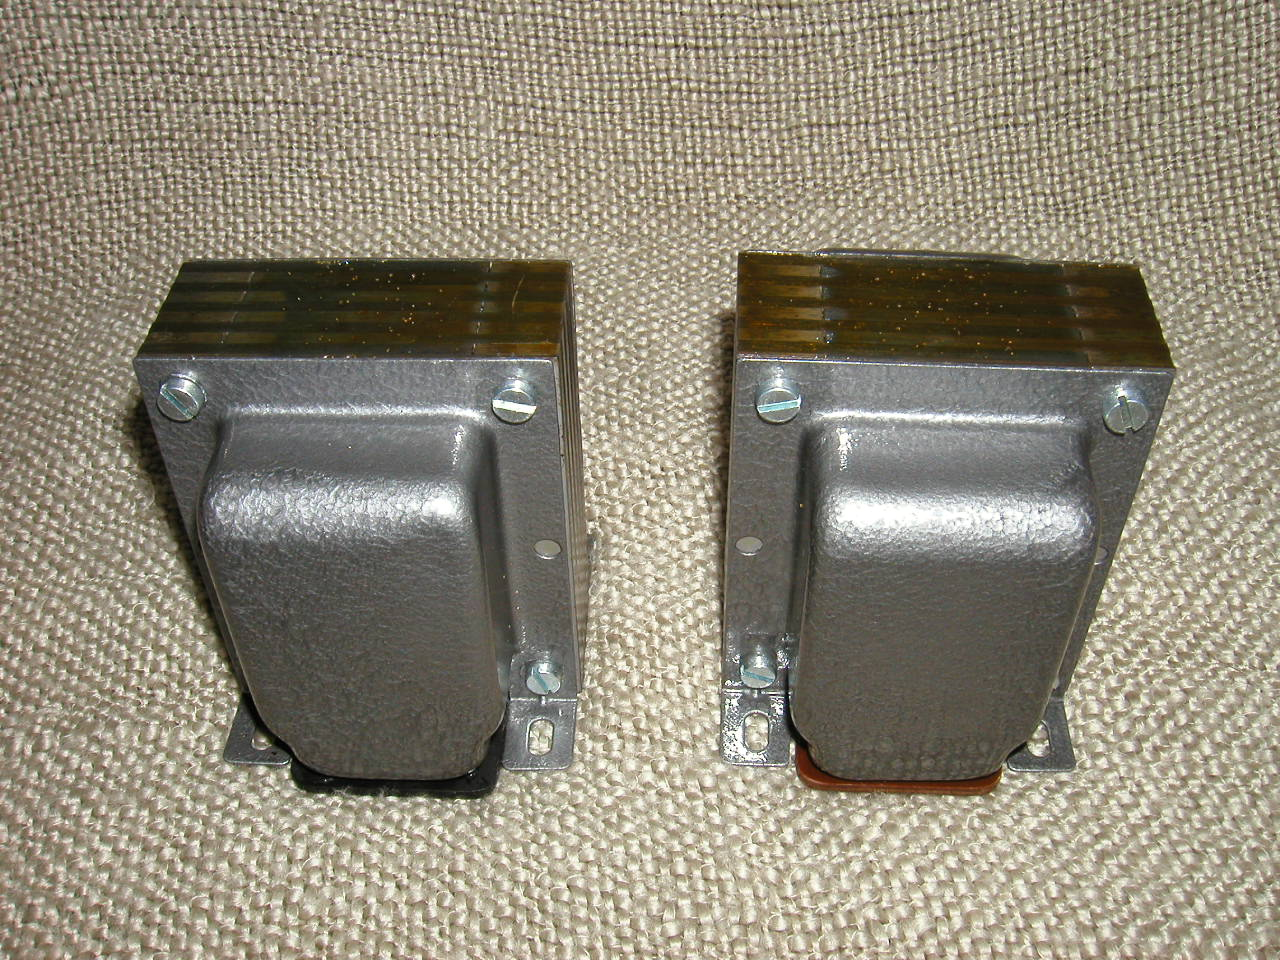 JTM45 Output Transformers